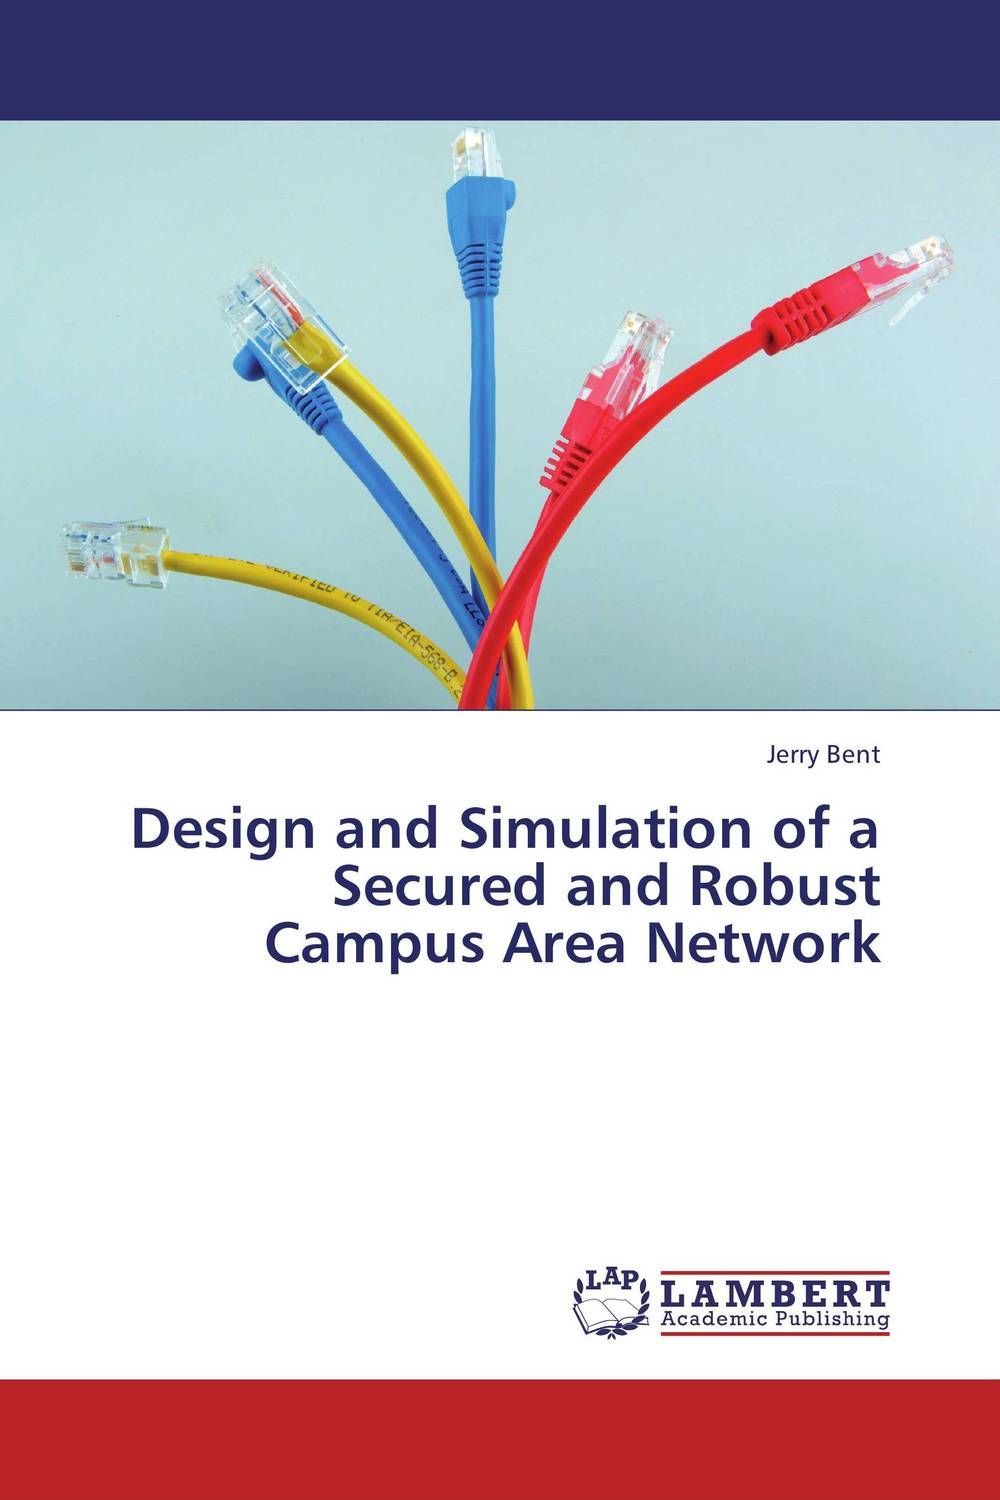 купить Design and Simulation of a Secured and Robust Campus Area Network недорого